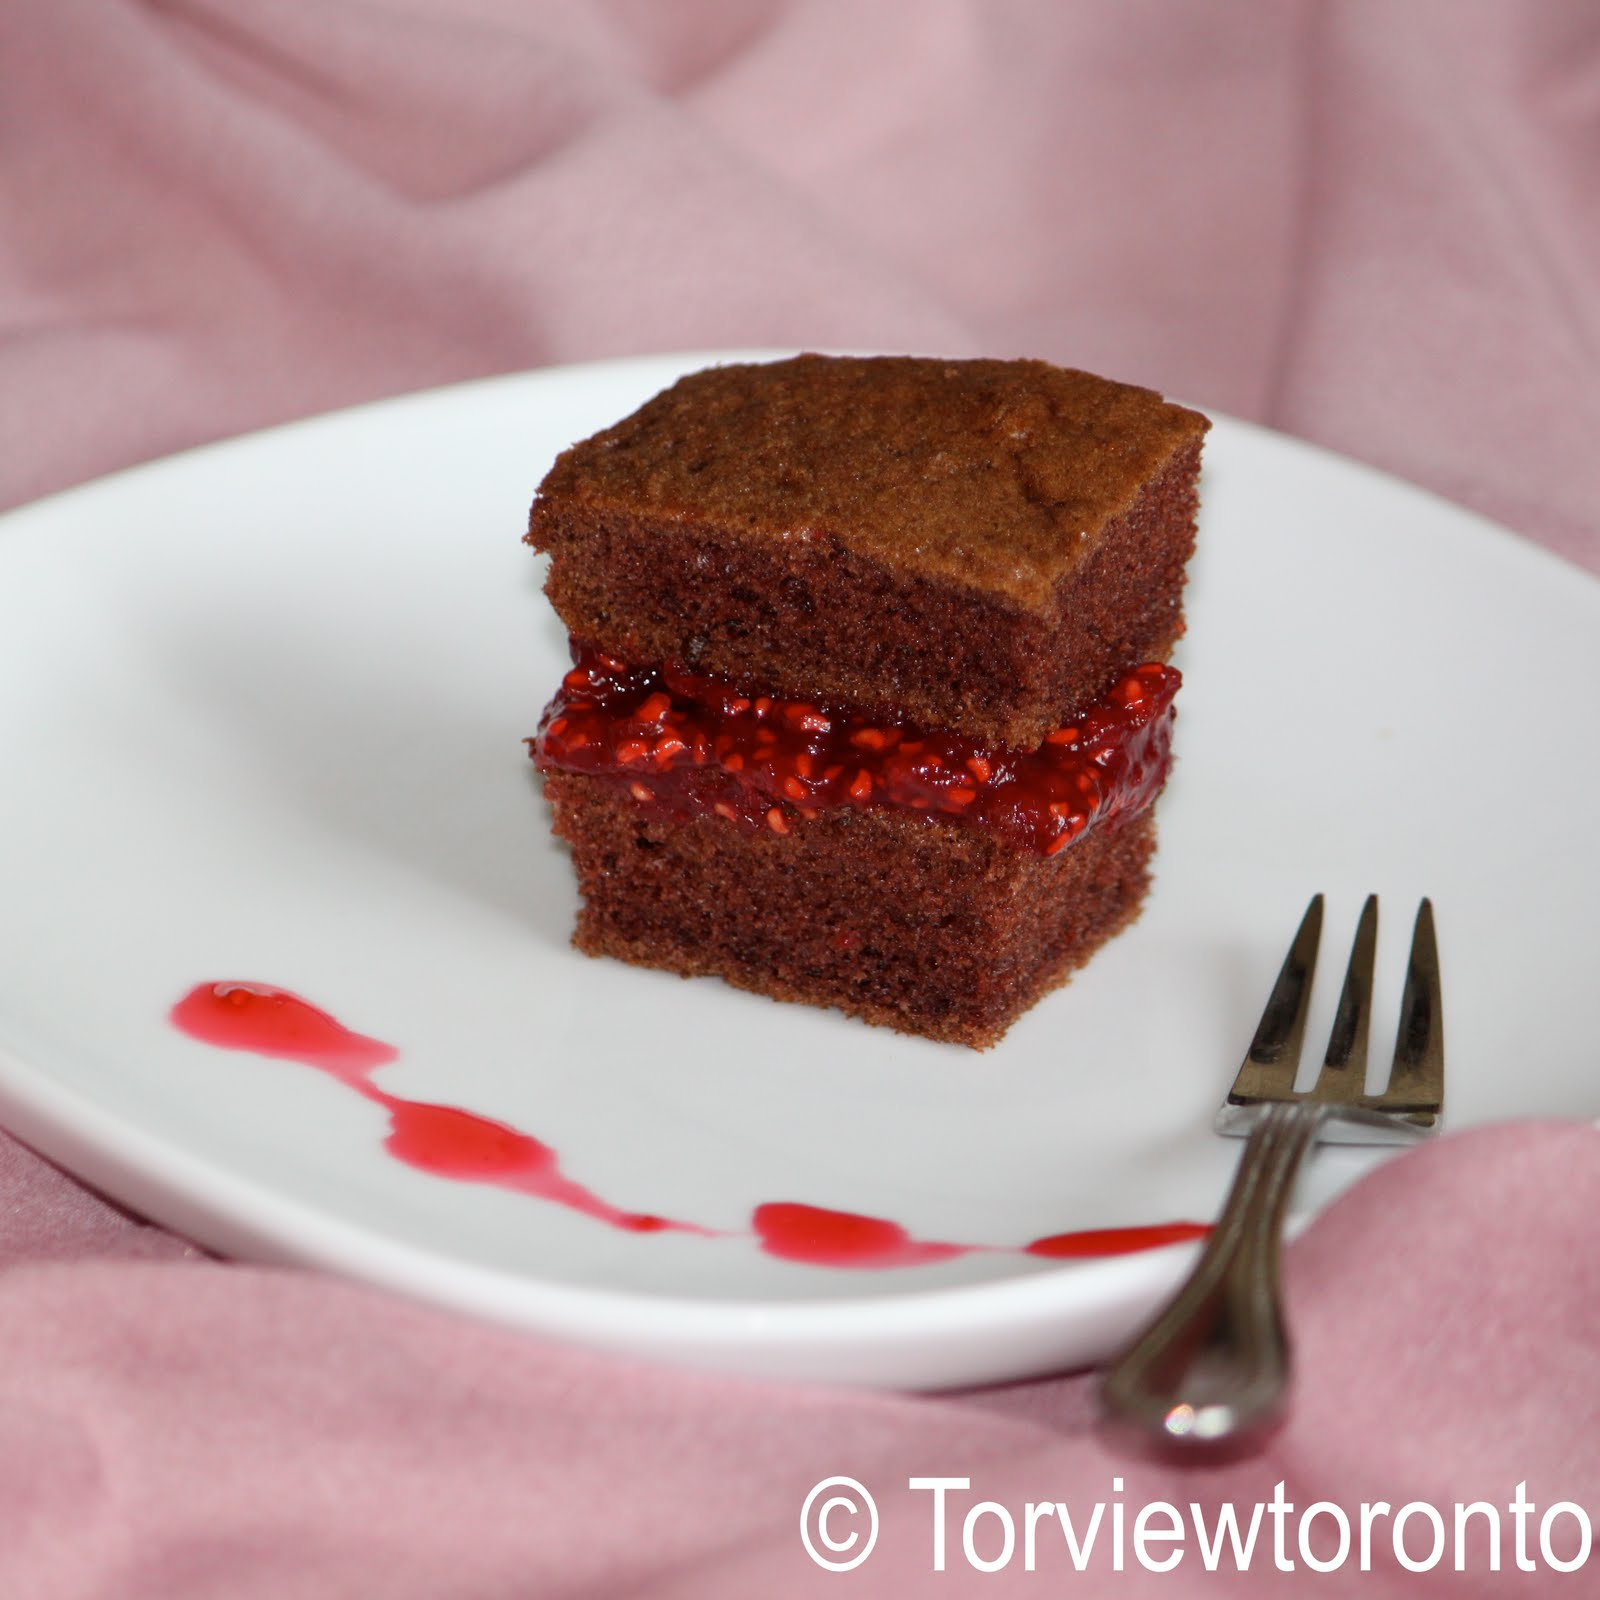 Torviewtoronto Chocolate Cake With Raspberry Jam